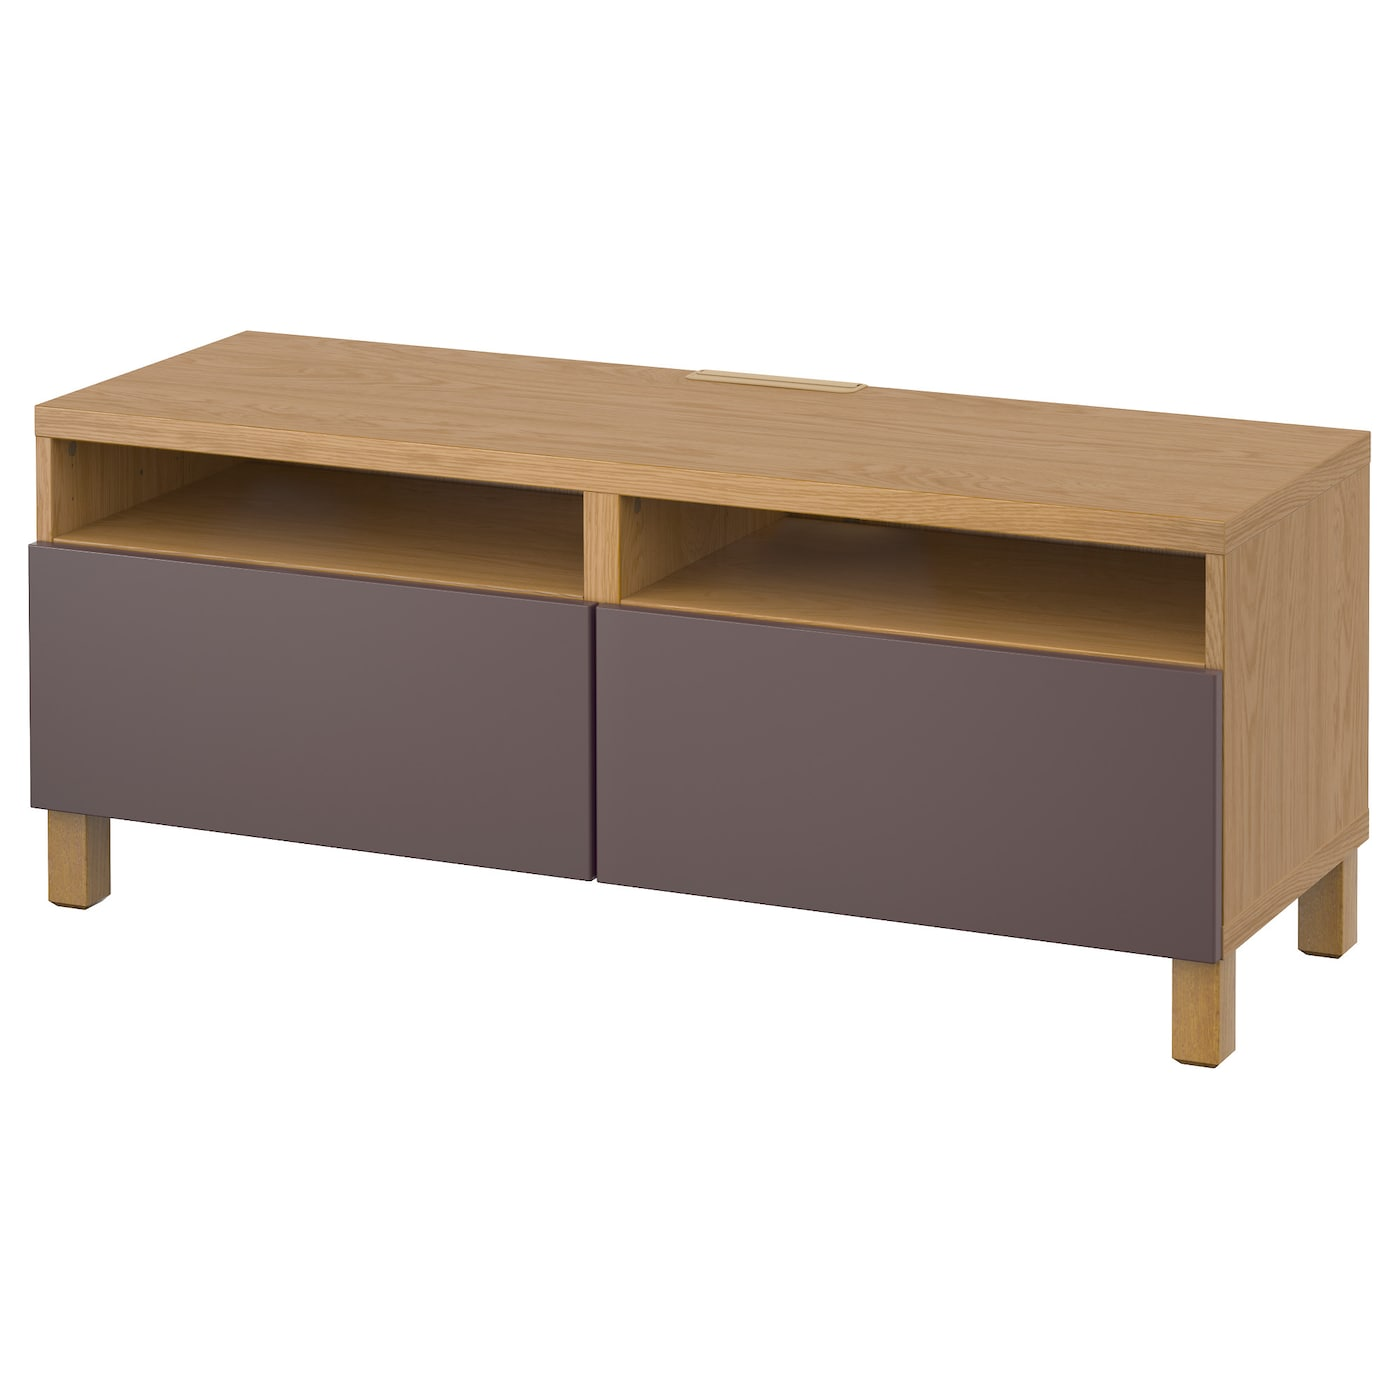 Best Tv Bench With Drawers Oak Effect Valviken Dark Brown 120x40x48 Cm Ikea